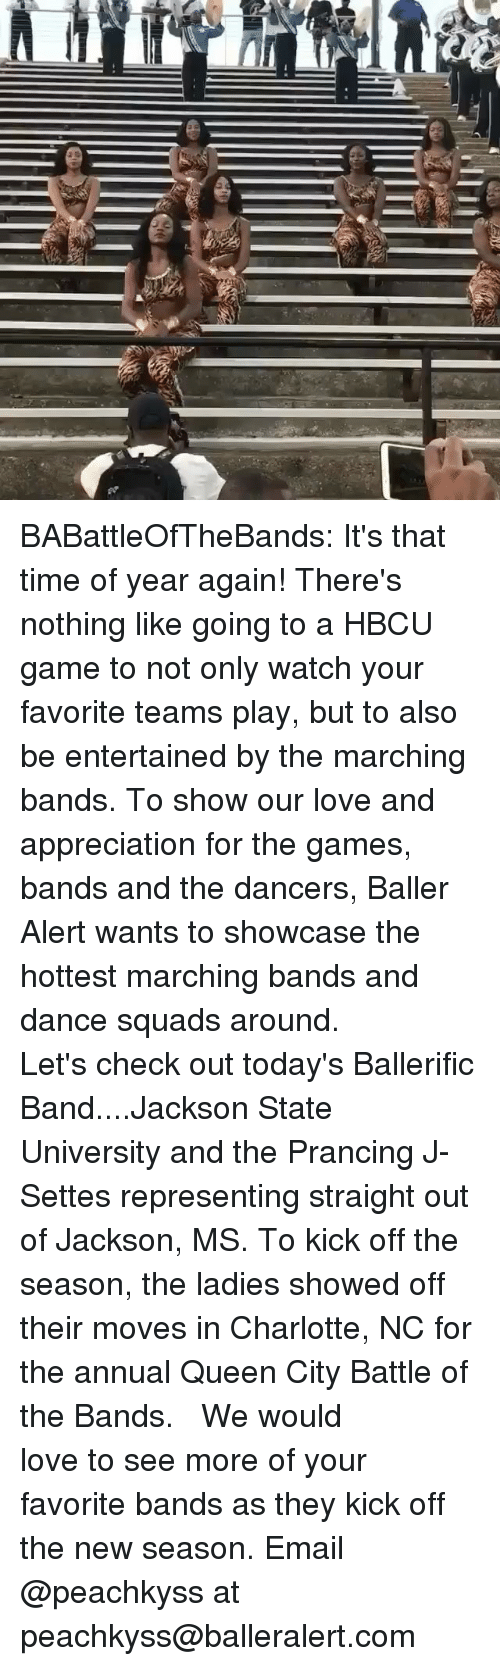 Dancee: BABattleOfTheBands: It's that time of year again! There's nothing like going to a HBCU game to not only watch your favorite teams play, but to also be entertained by the marching bands. To show our love and appreciation for the games, bands and the dancers, Baller Alert wants to showcase the hottest marching bands and dance squads around. ⠀⠀⠀ ⠀⠀⠀⠀⠀⠀⠀ Let's check out today's Ballerific Band....Jackson State University and the Prancing J-Settes representing straight out of Jackson, MS. To kick off the season, the ladies showed off their moves in Charlotte, NC for the annual Queen City Battle of the Bands. ⠀⠀⠀⠀⠀⠀⠀ ⠀⠀⠀⠀⠀⠀⠀ We would love to see more of your favorite bands as they kick off the new season. Email @peachkyss at peachkyss@balleralert.com